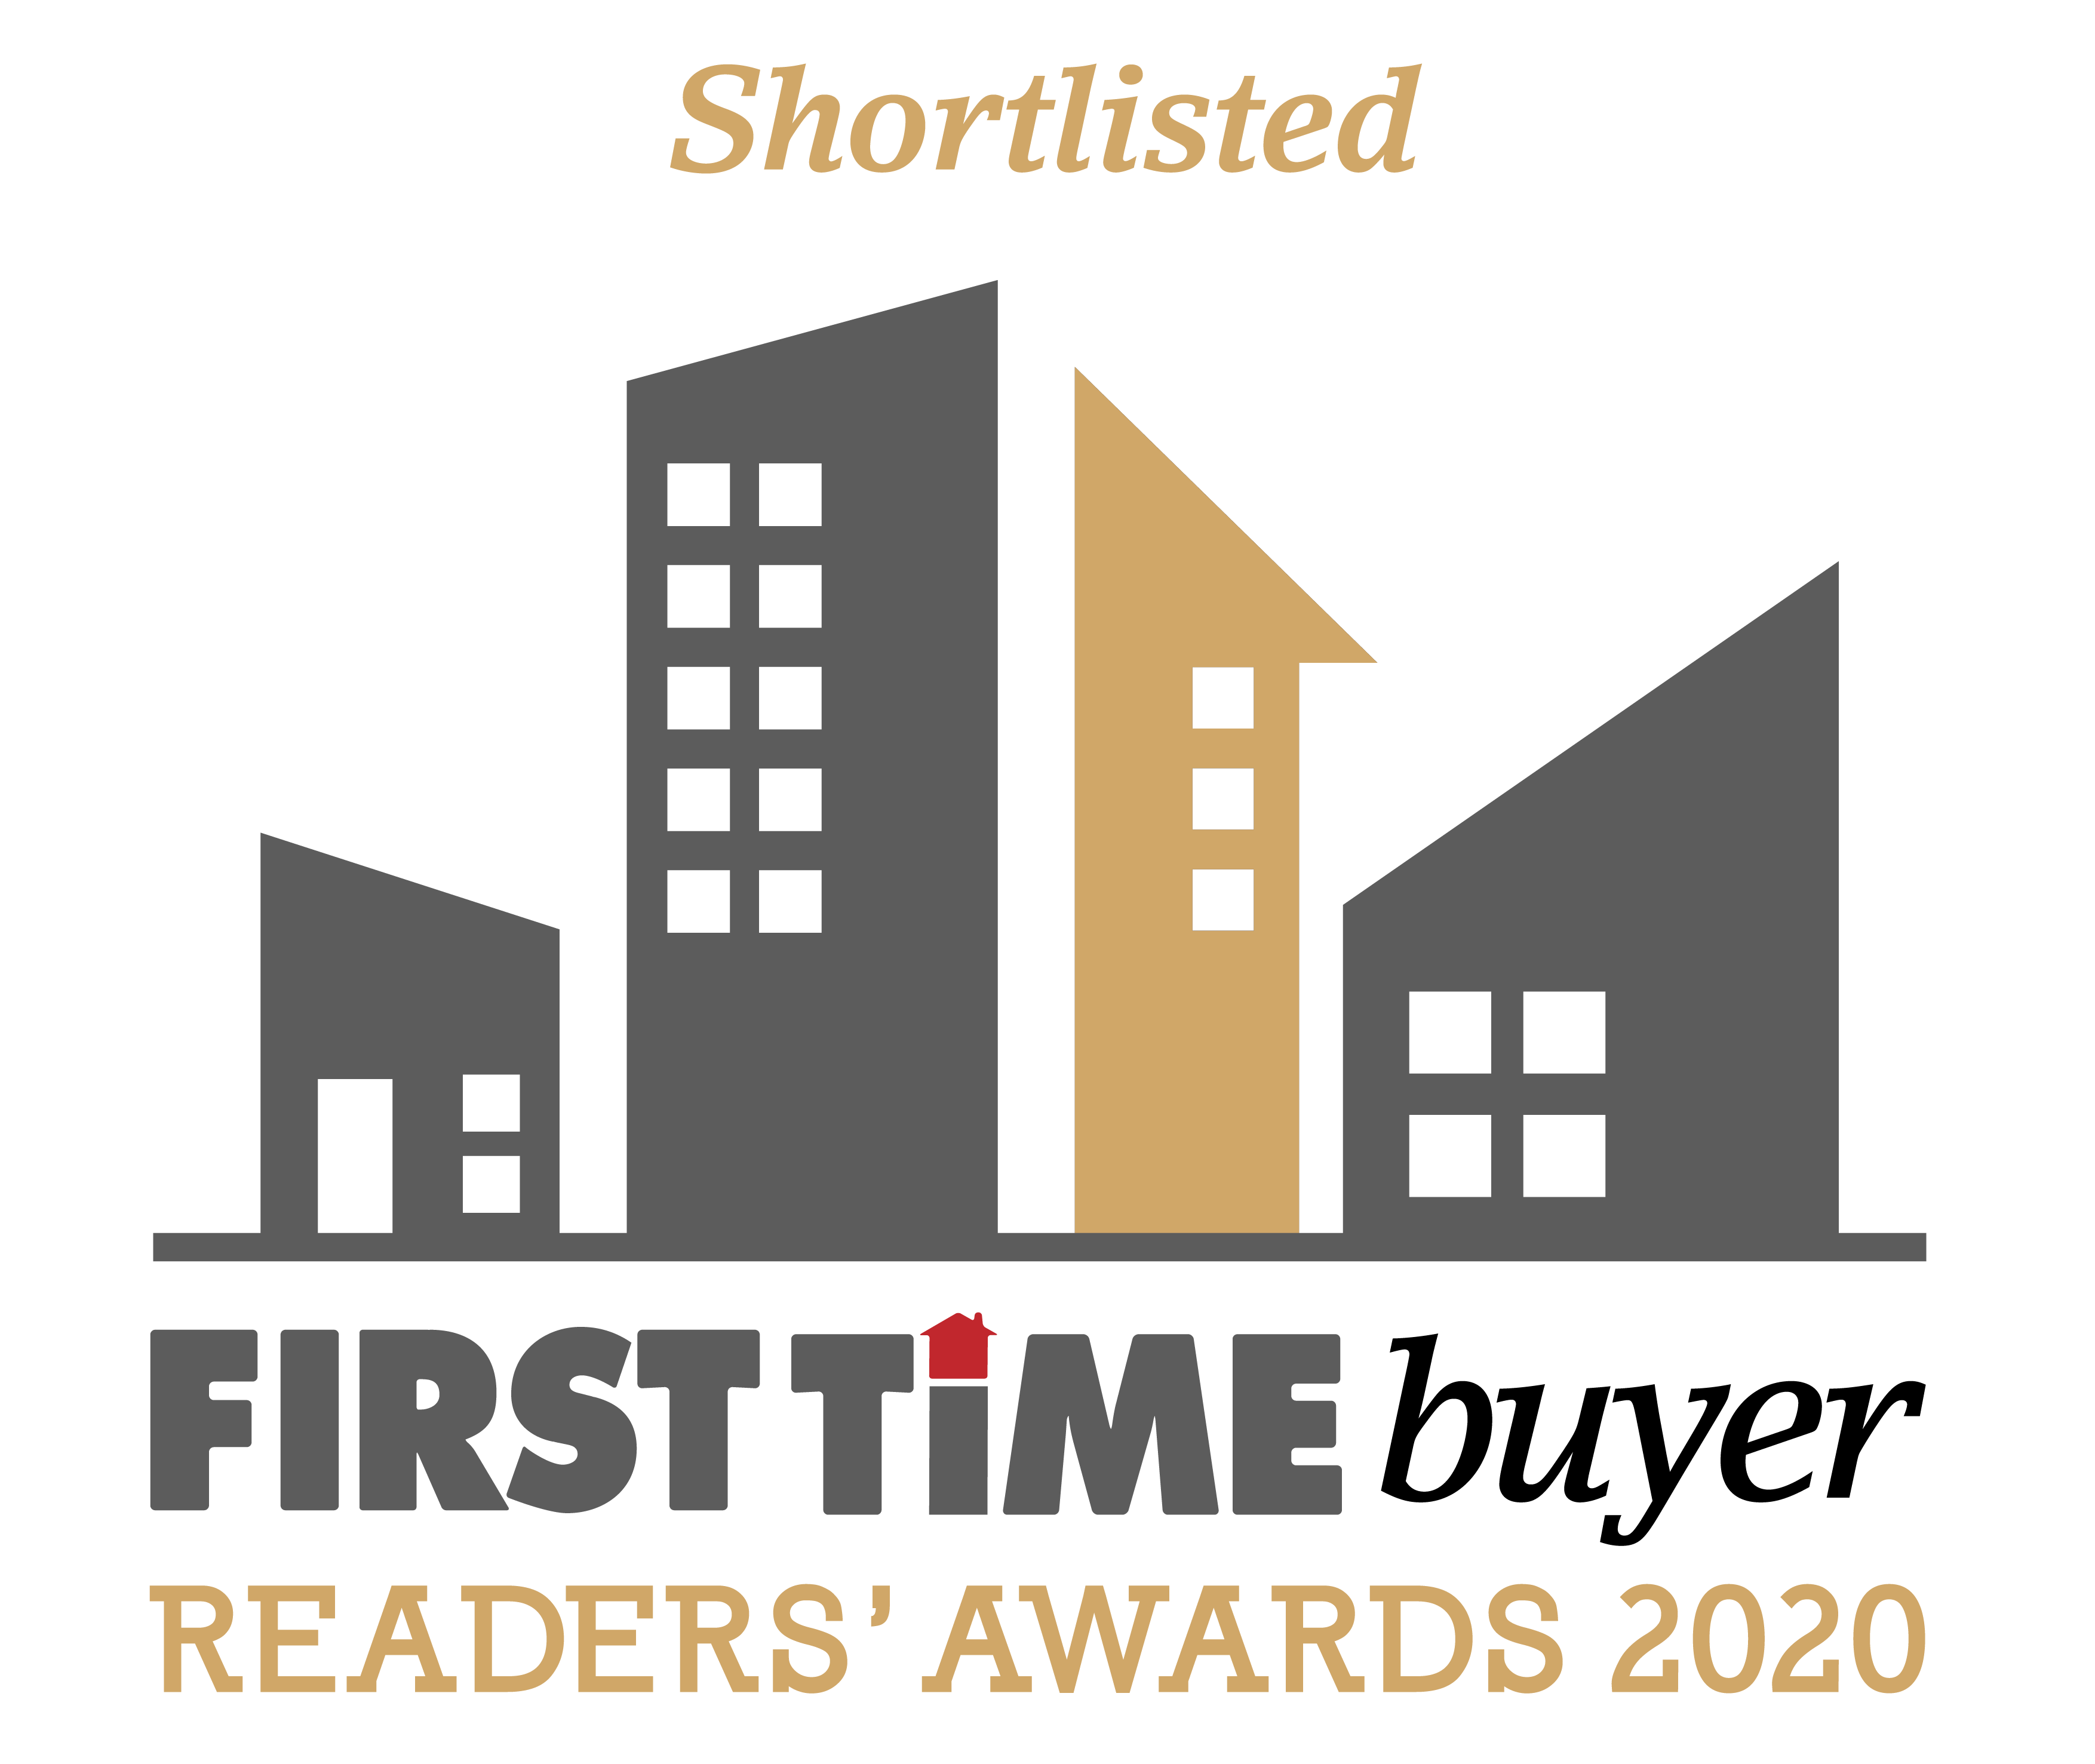 First Time Buyer Reader Awards 2020